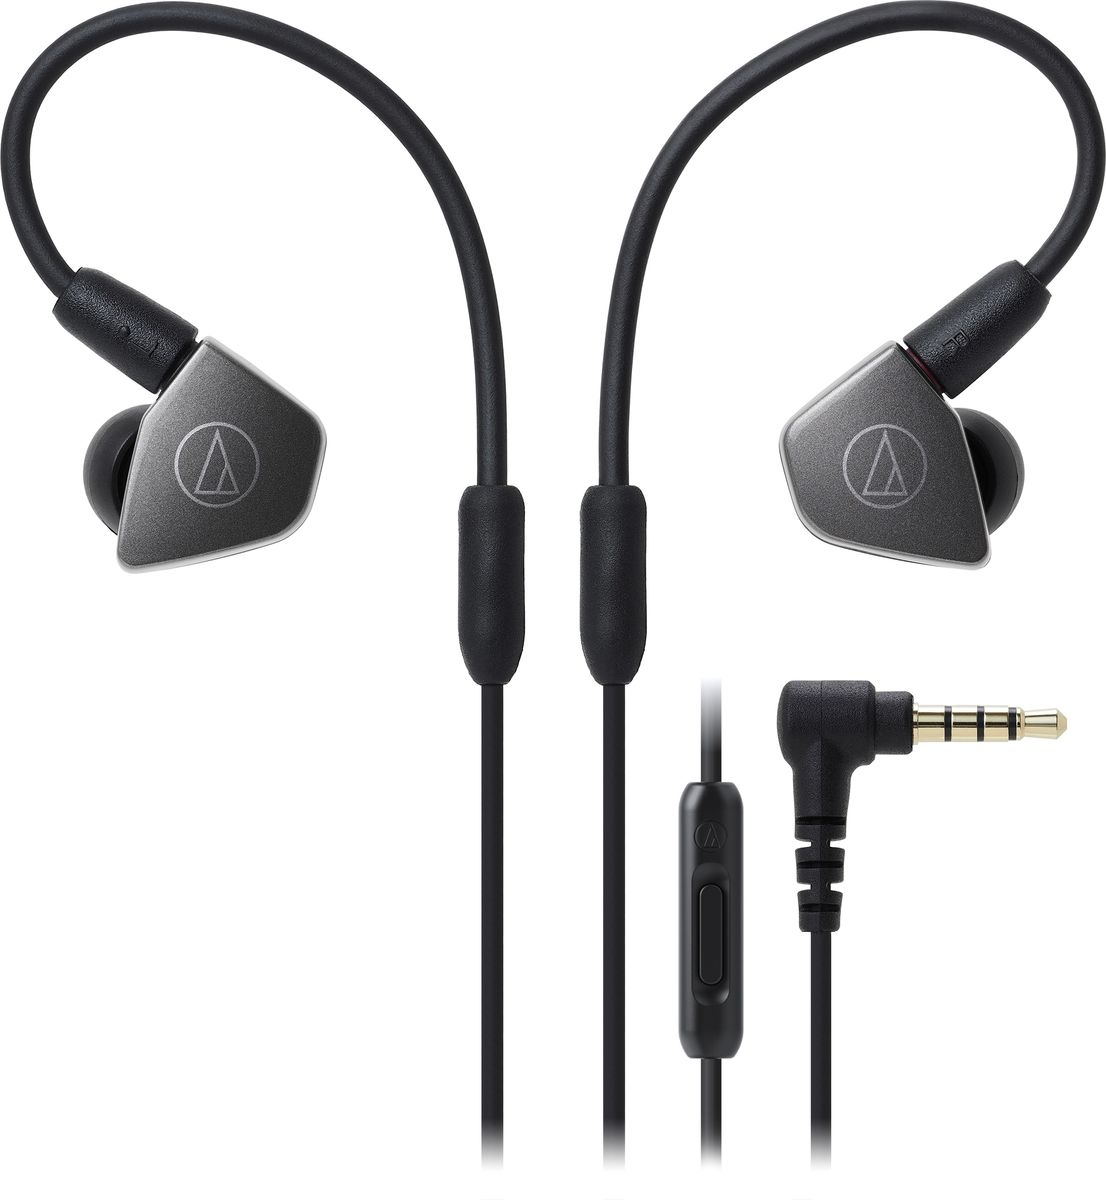 Audio-Technica ATH-LS70IS, Gray наушники наушники audio technica ath m50x black